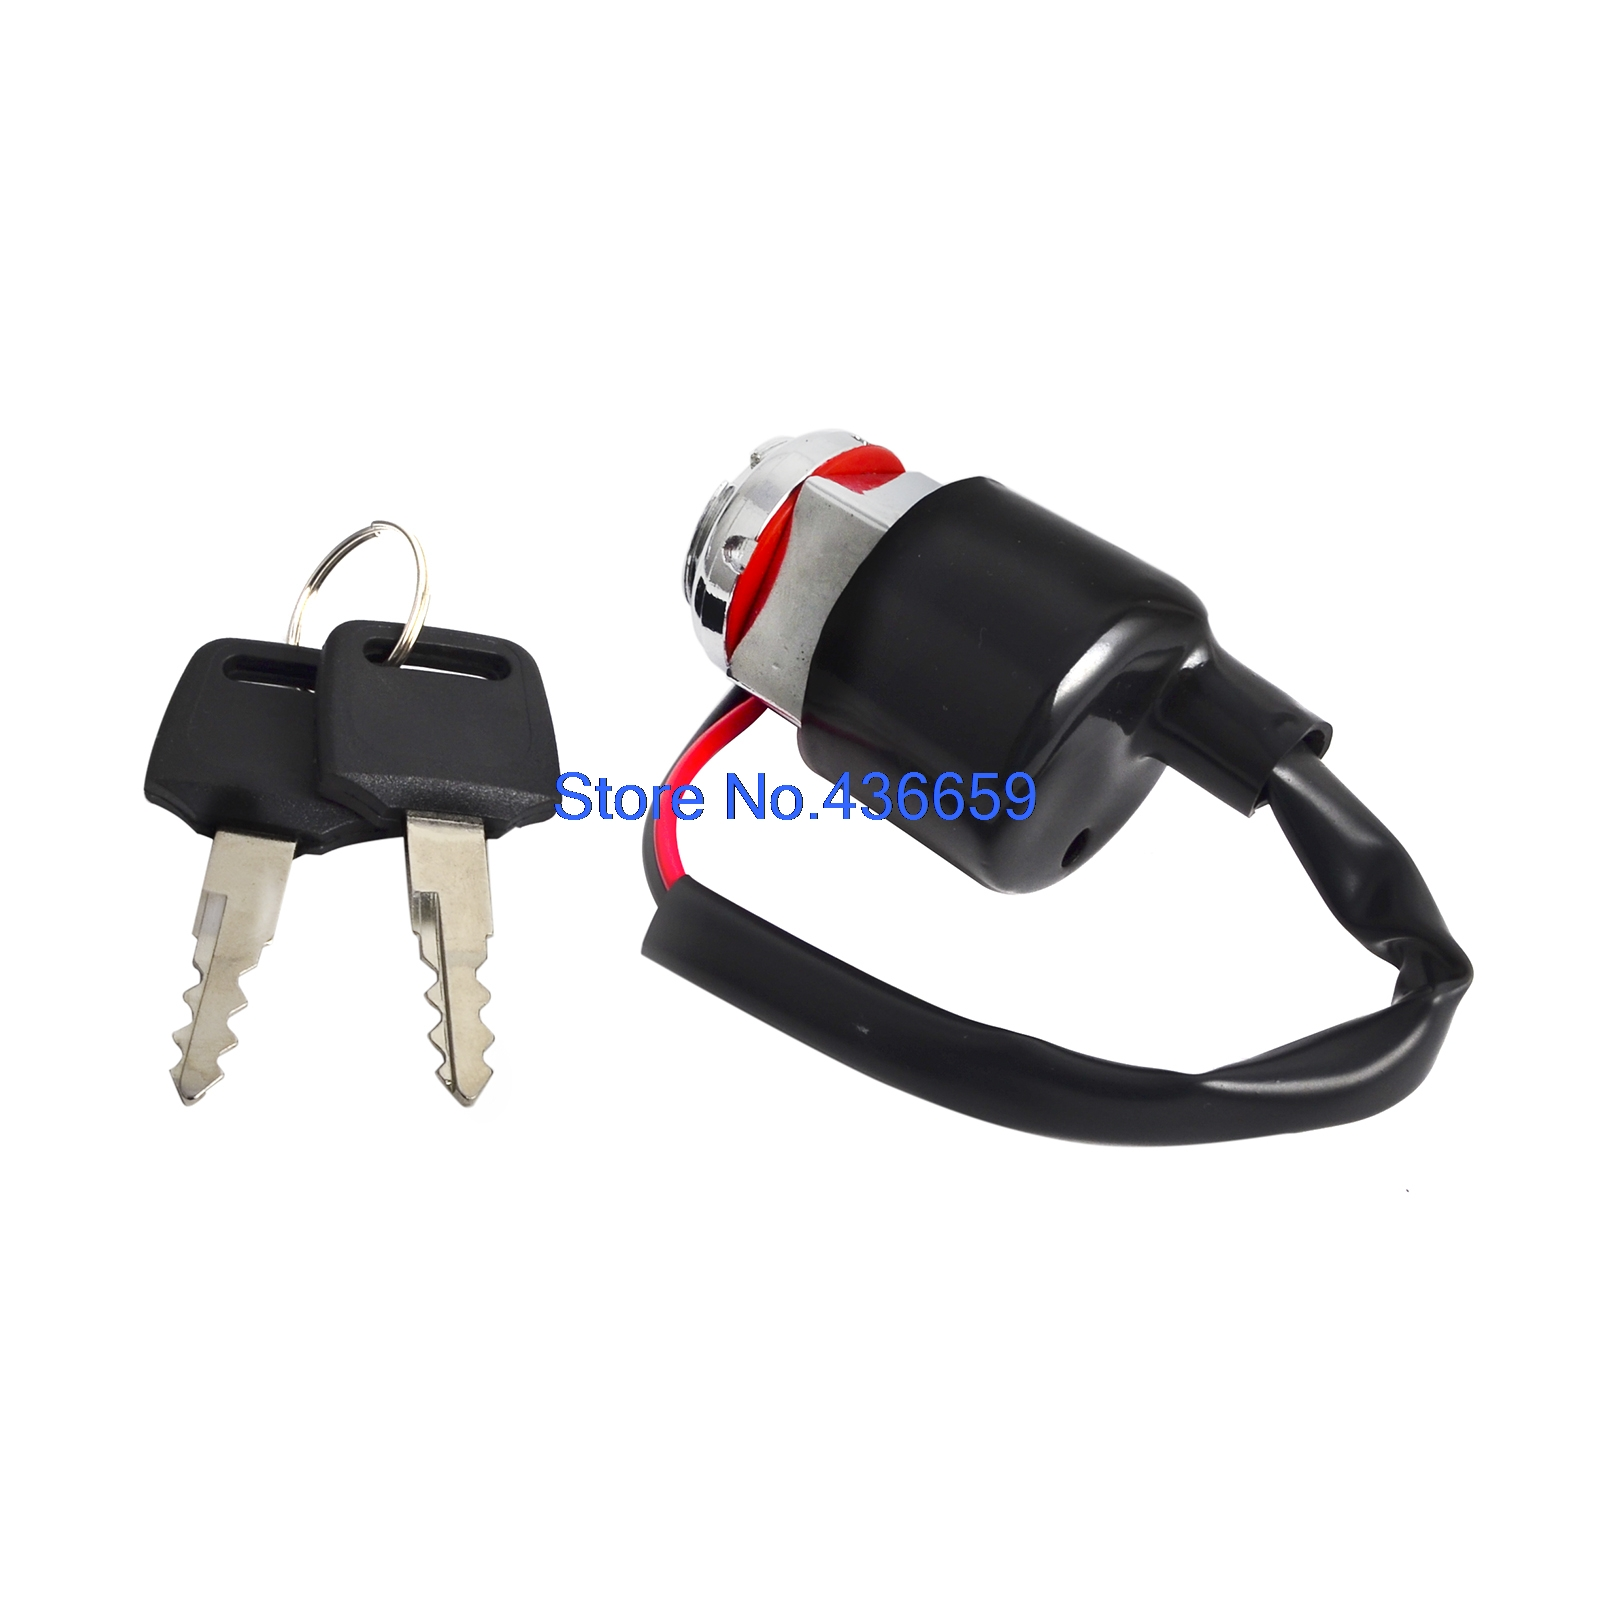 medium resolution of ignition switch with 2 keys 2 wire for honda cb100 super sport 100 cb125 cl70 cl90